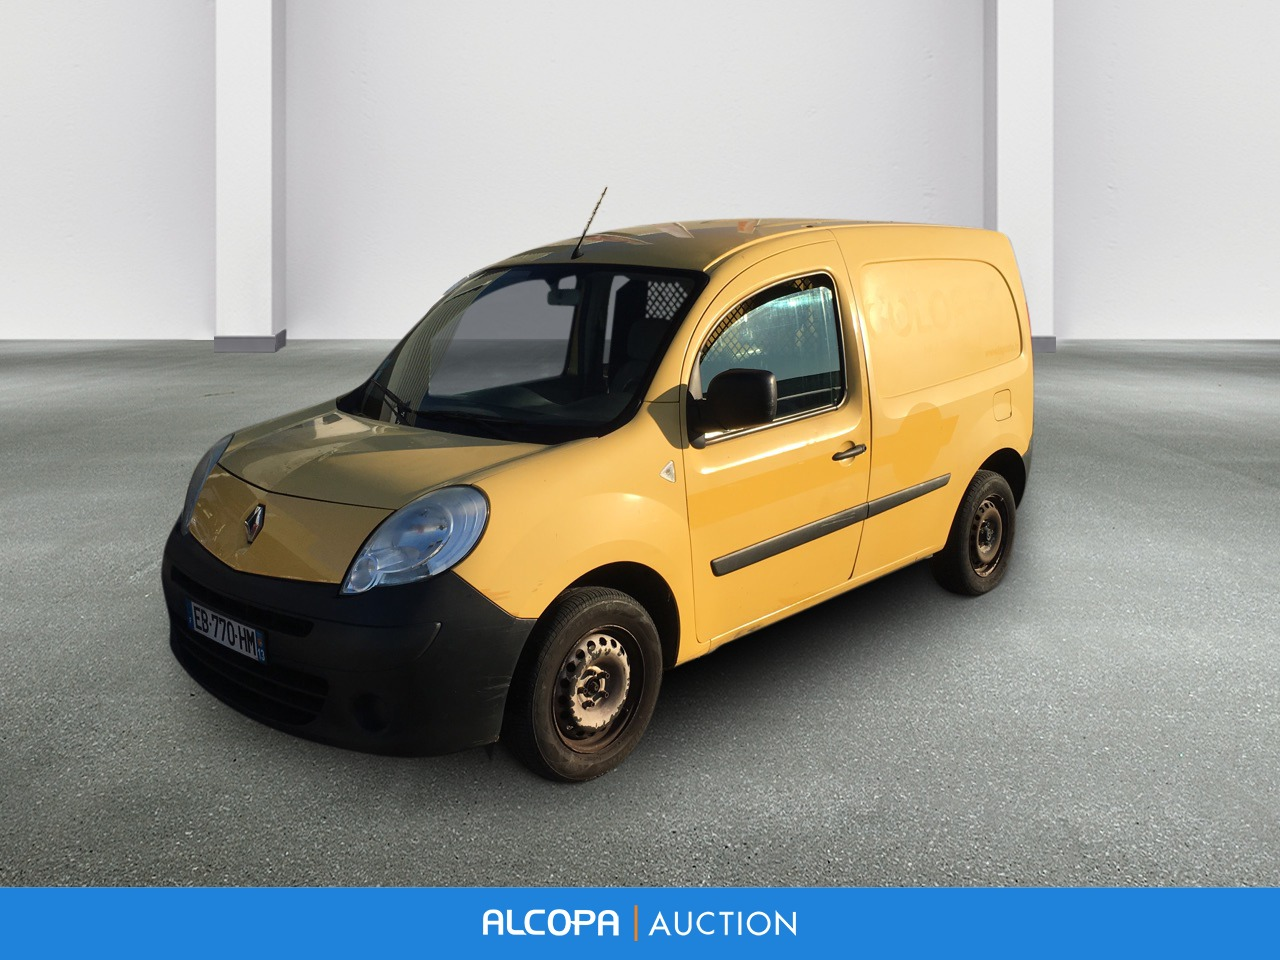 renault kangoo express kangoo express l1 1 5 dci 70 confort marseille alcopa auction. Black Bedroom Furniture Sets. Home Design Ideas